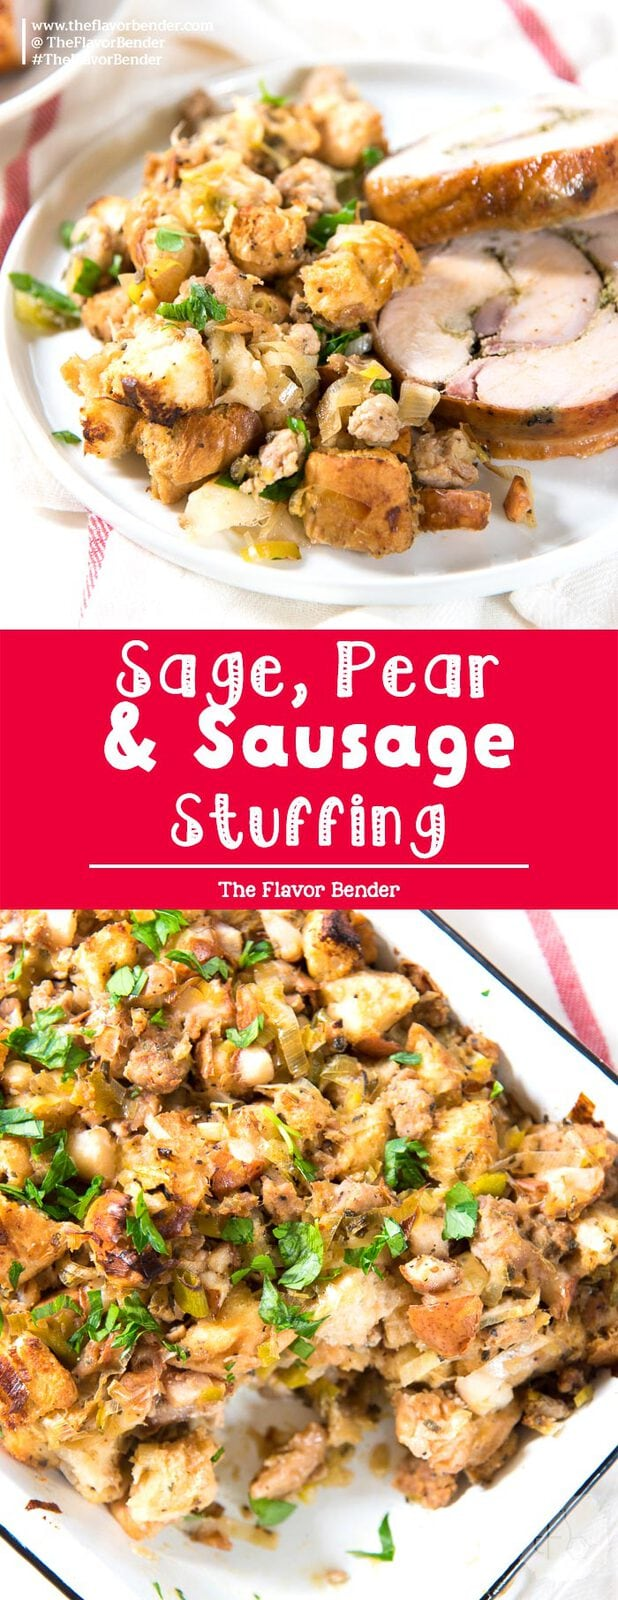 Pear, Sage and Sausage Stuffing - With chunks of sausage and pear and chewy pieces of bread, this is a hearty, flavorful stuffing that's perfect for your thanksgiving table! #ThanksgivingRecipes #StuffingRecipes #DressingRecipes #RoastDinners